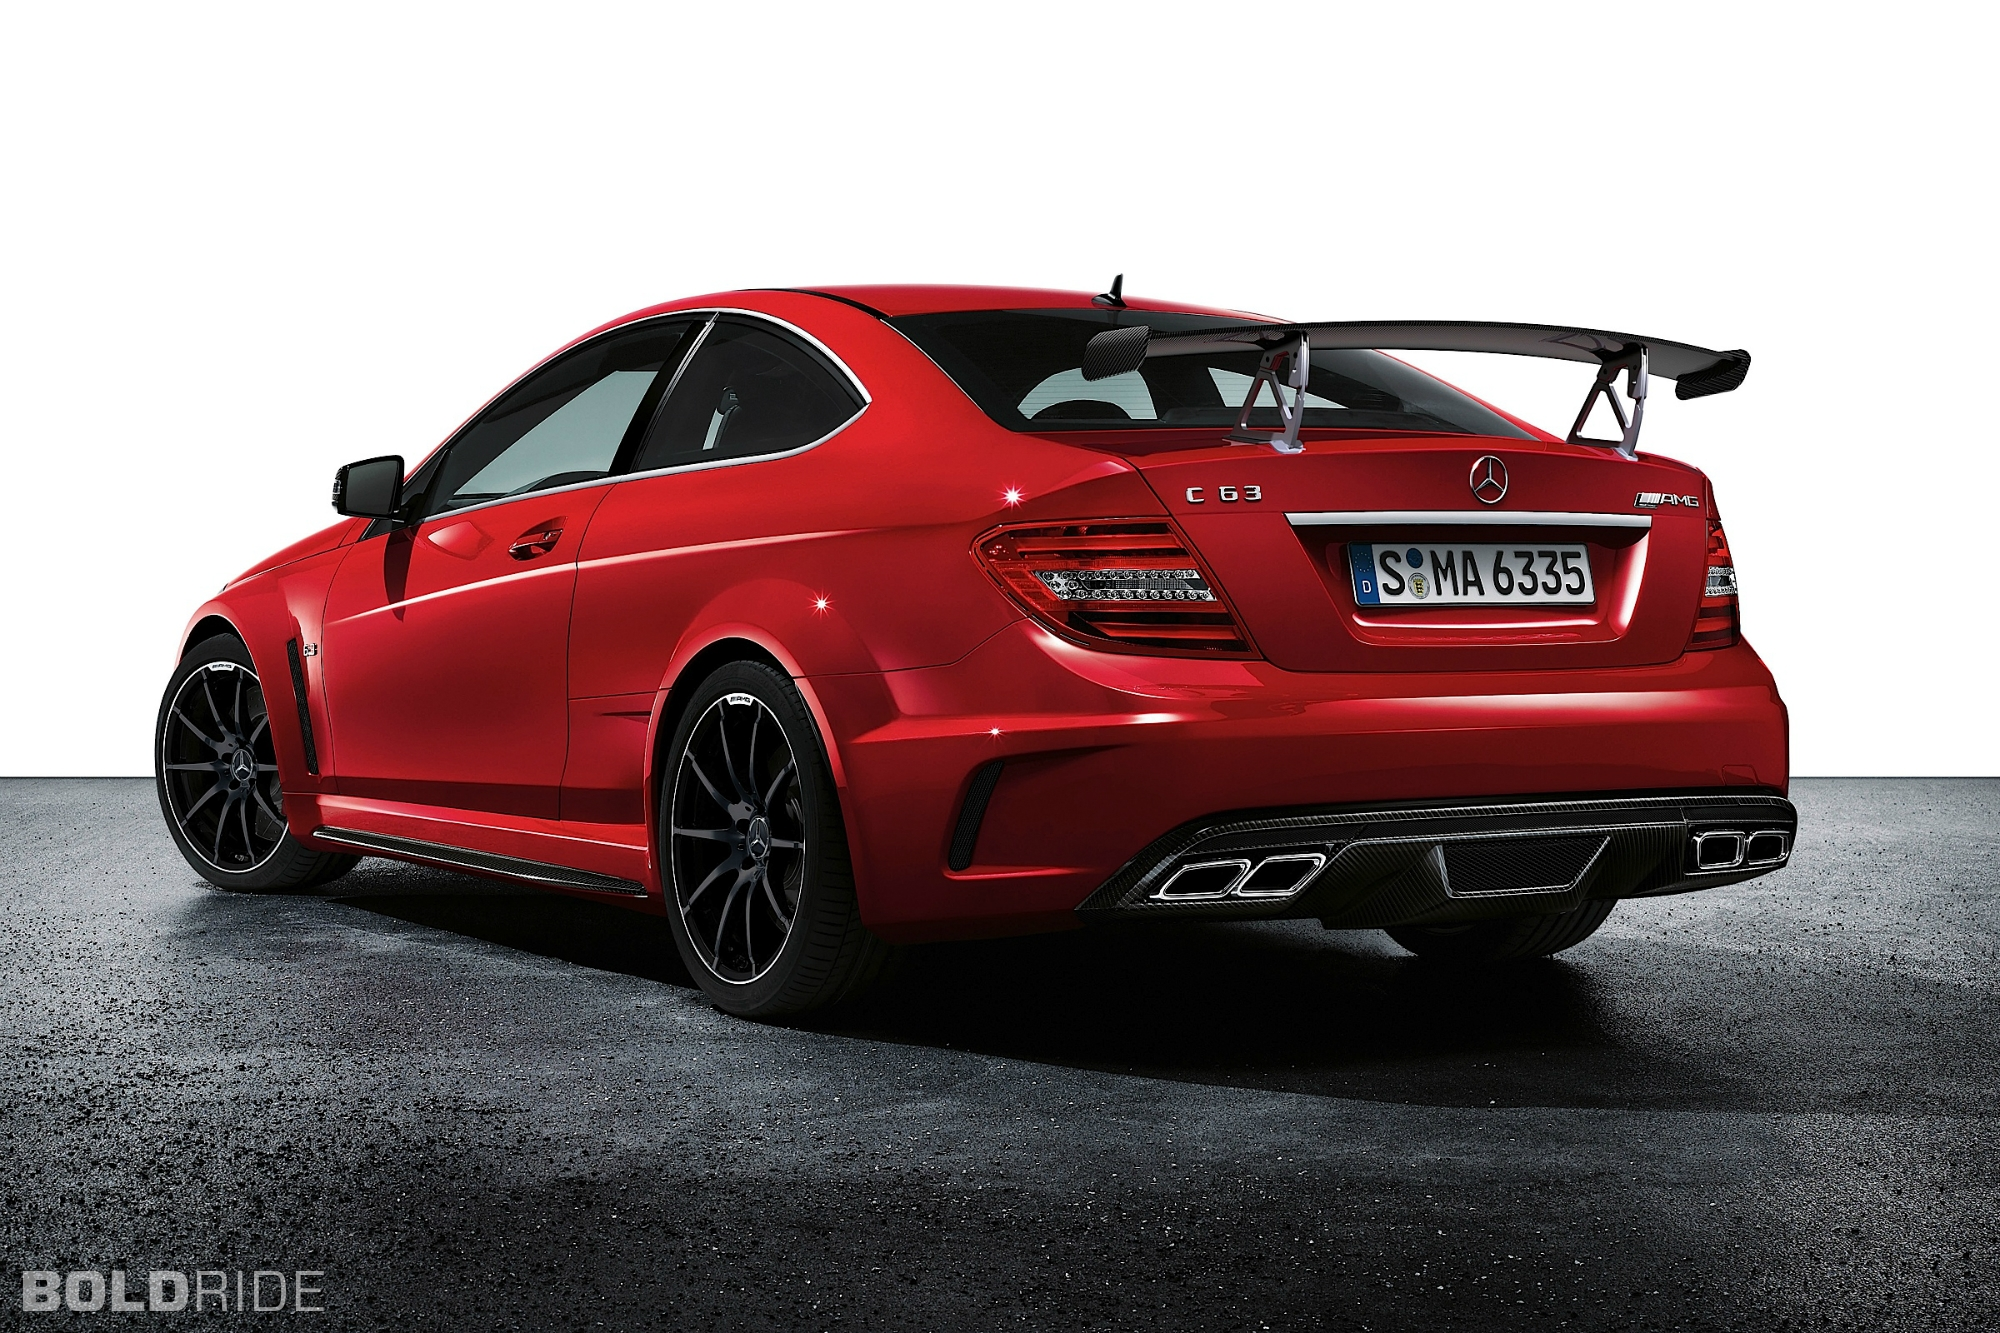 2012 Mercedes-Benz C63 AMG Coupe Black Series 2000 x 1333